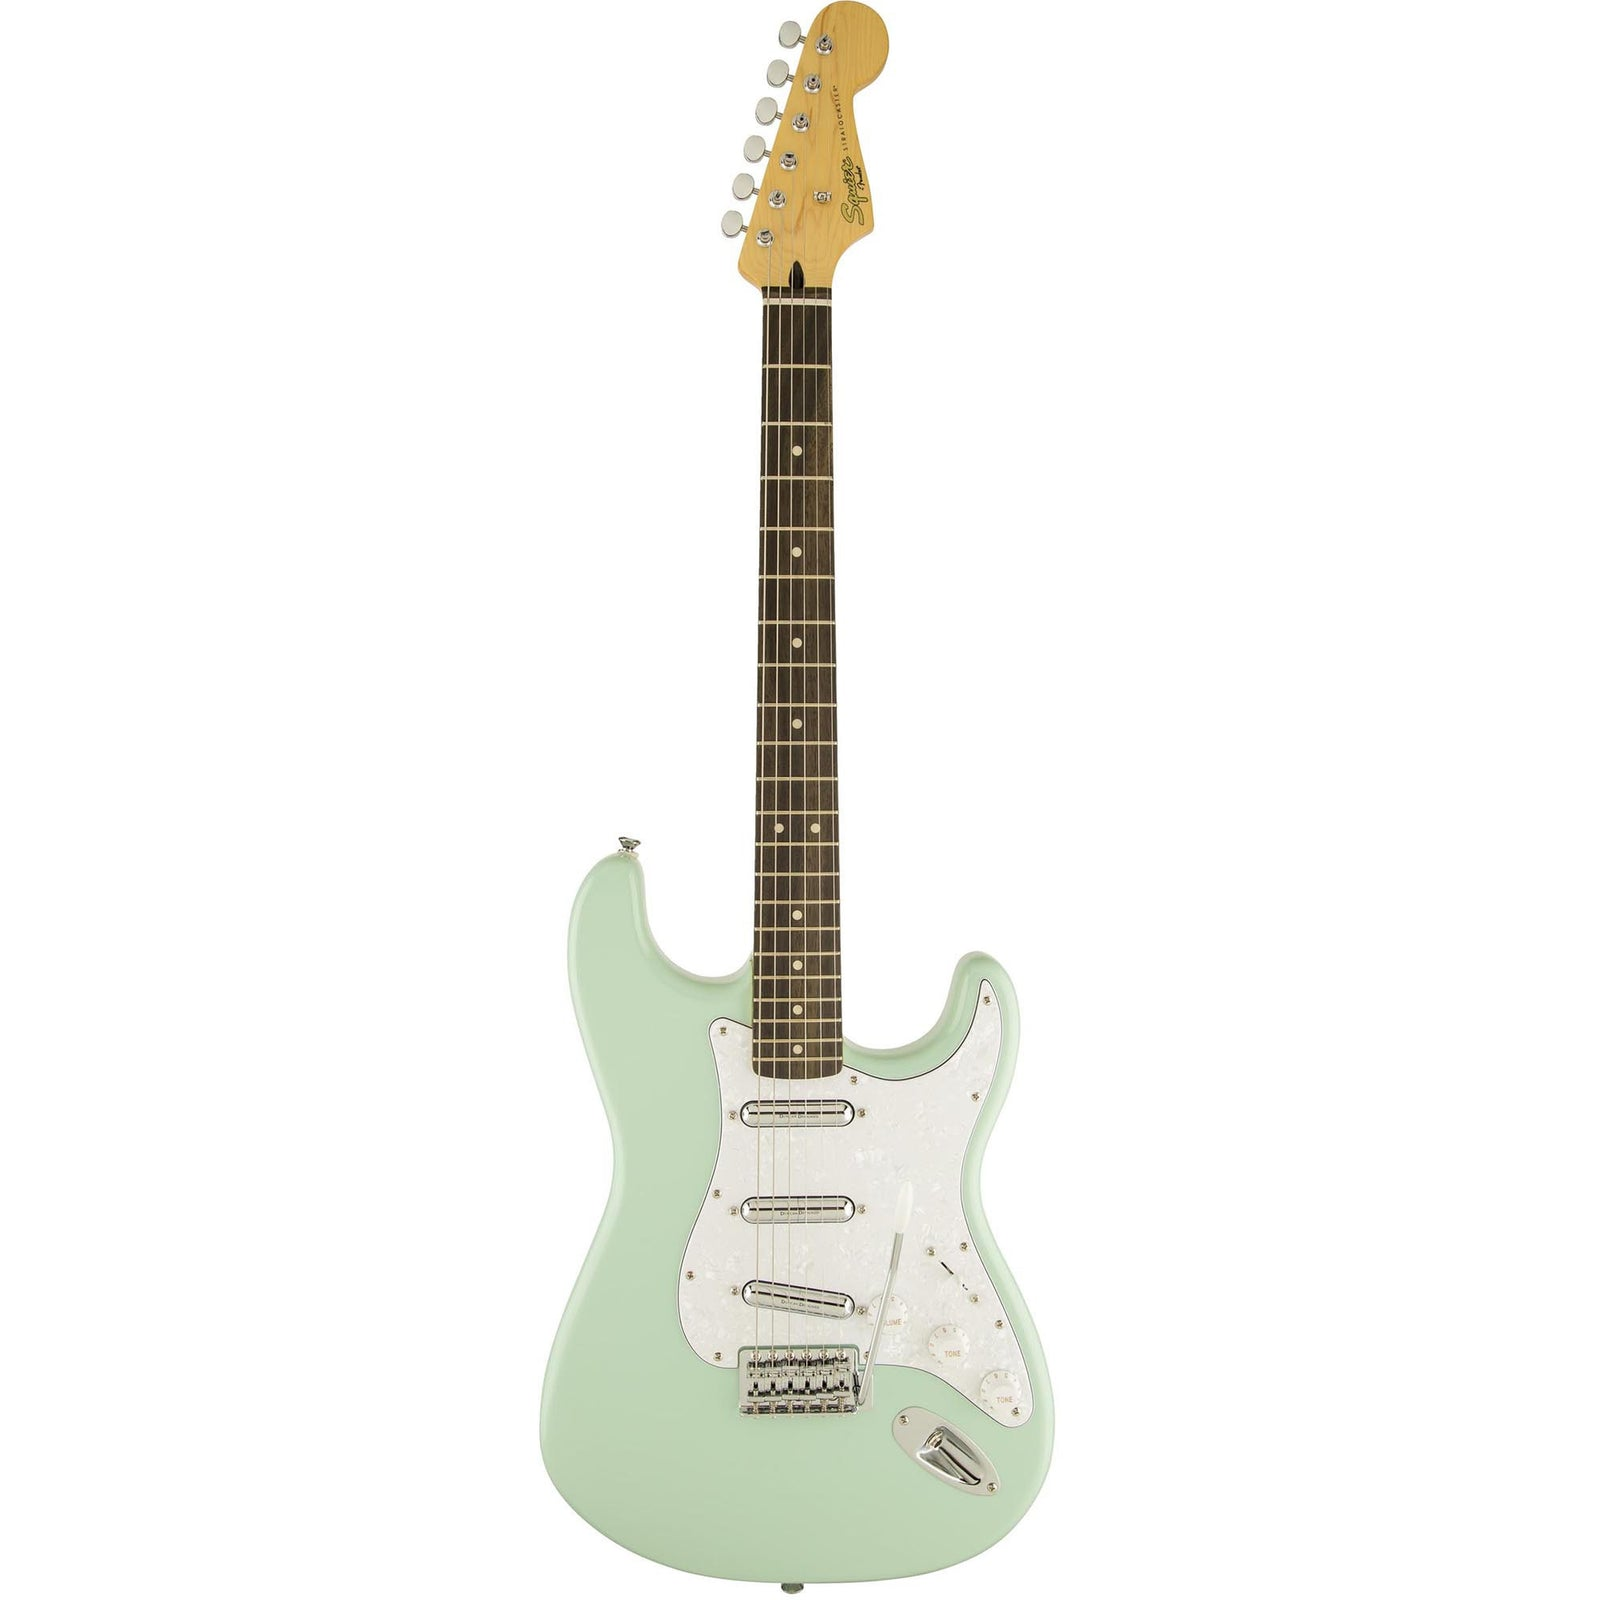 Squier Vintage Modified Surf Stratocaster - Surf Green